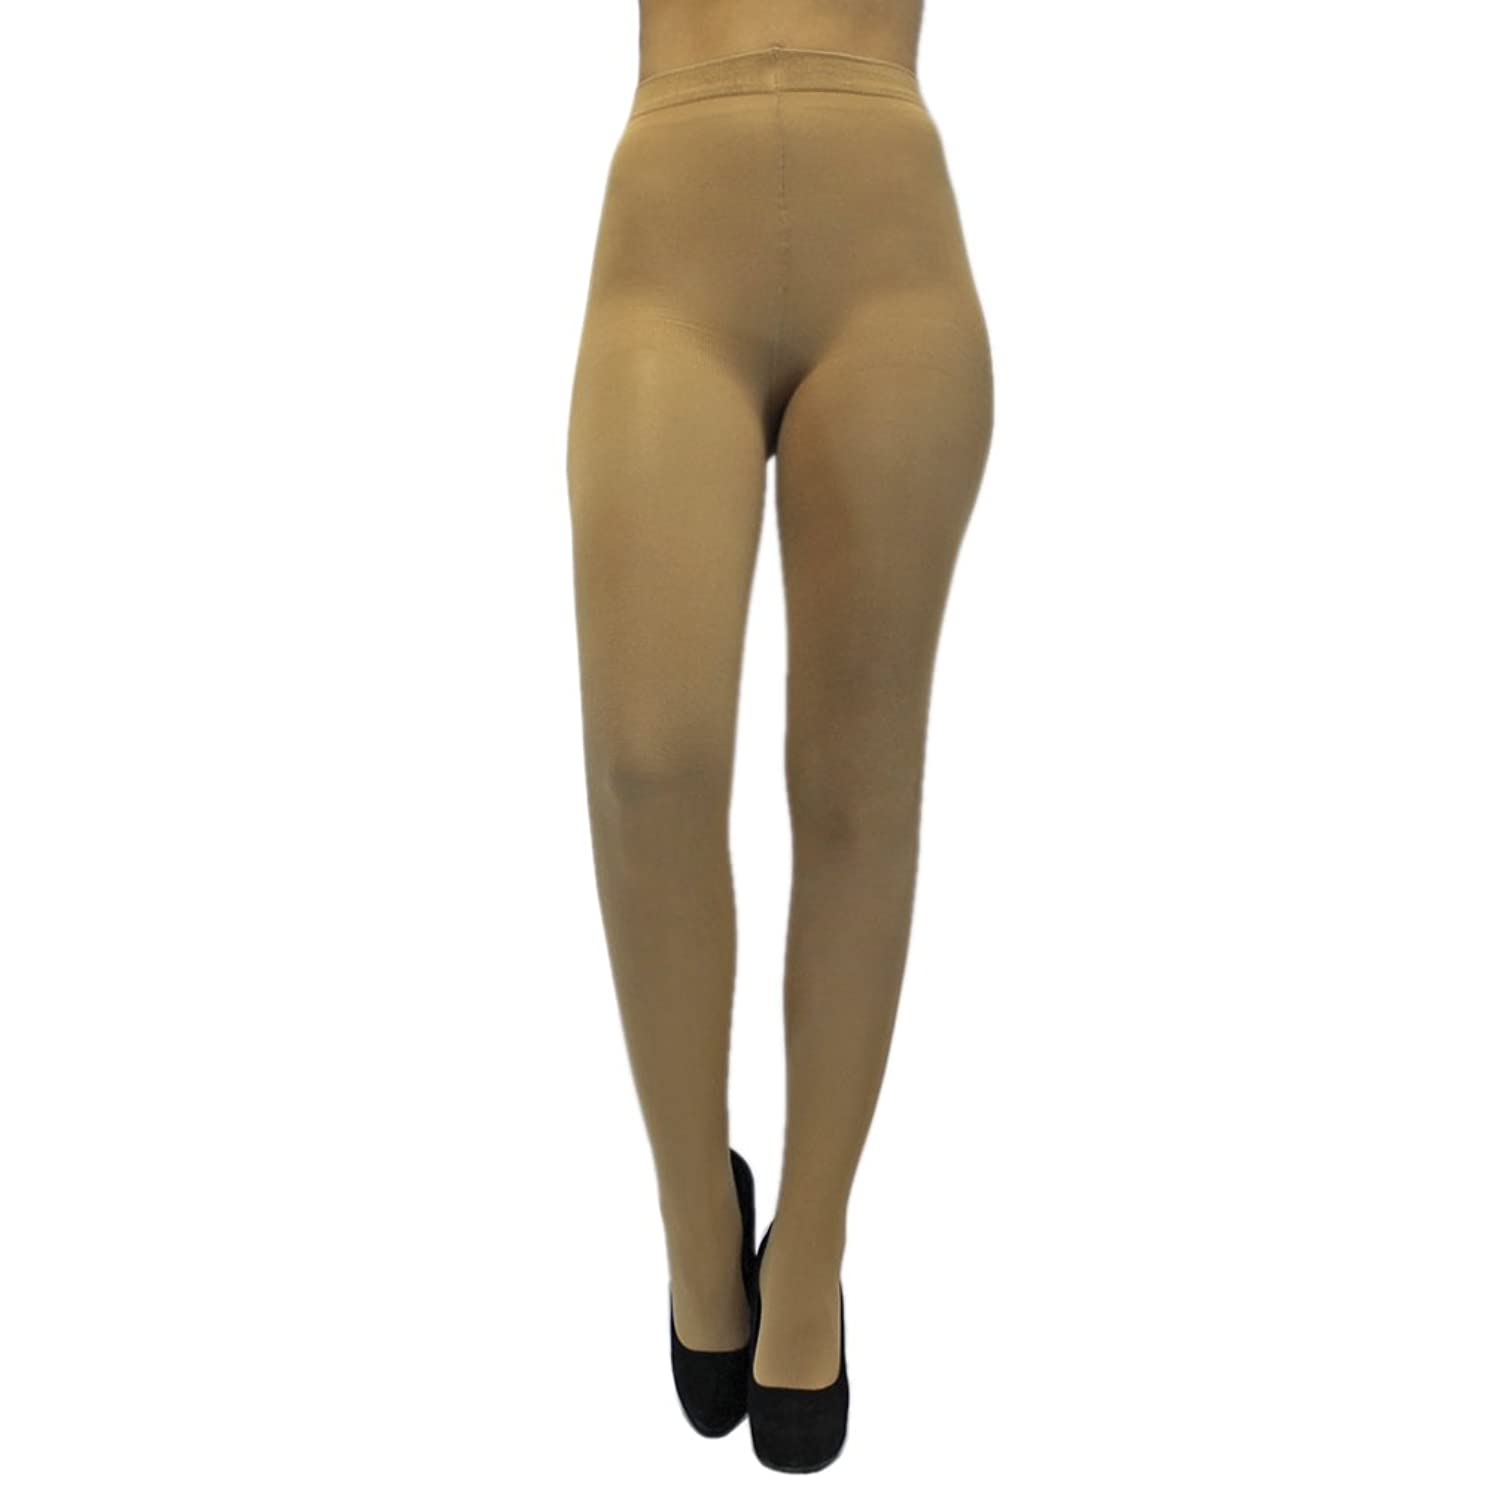 Nude Beige Opaque Stretchy Pantyhose Tights at Amazon Women's ...